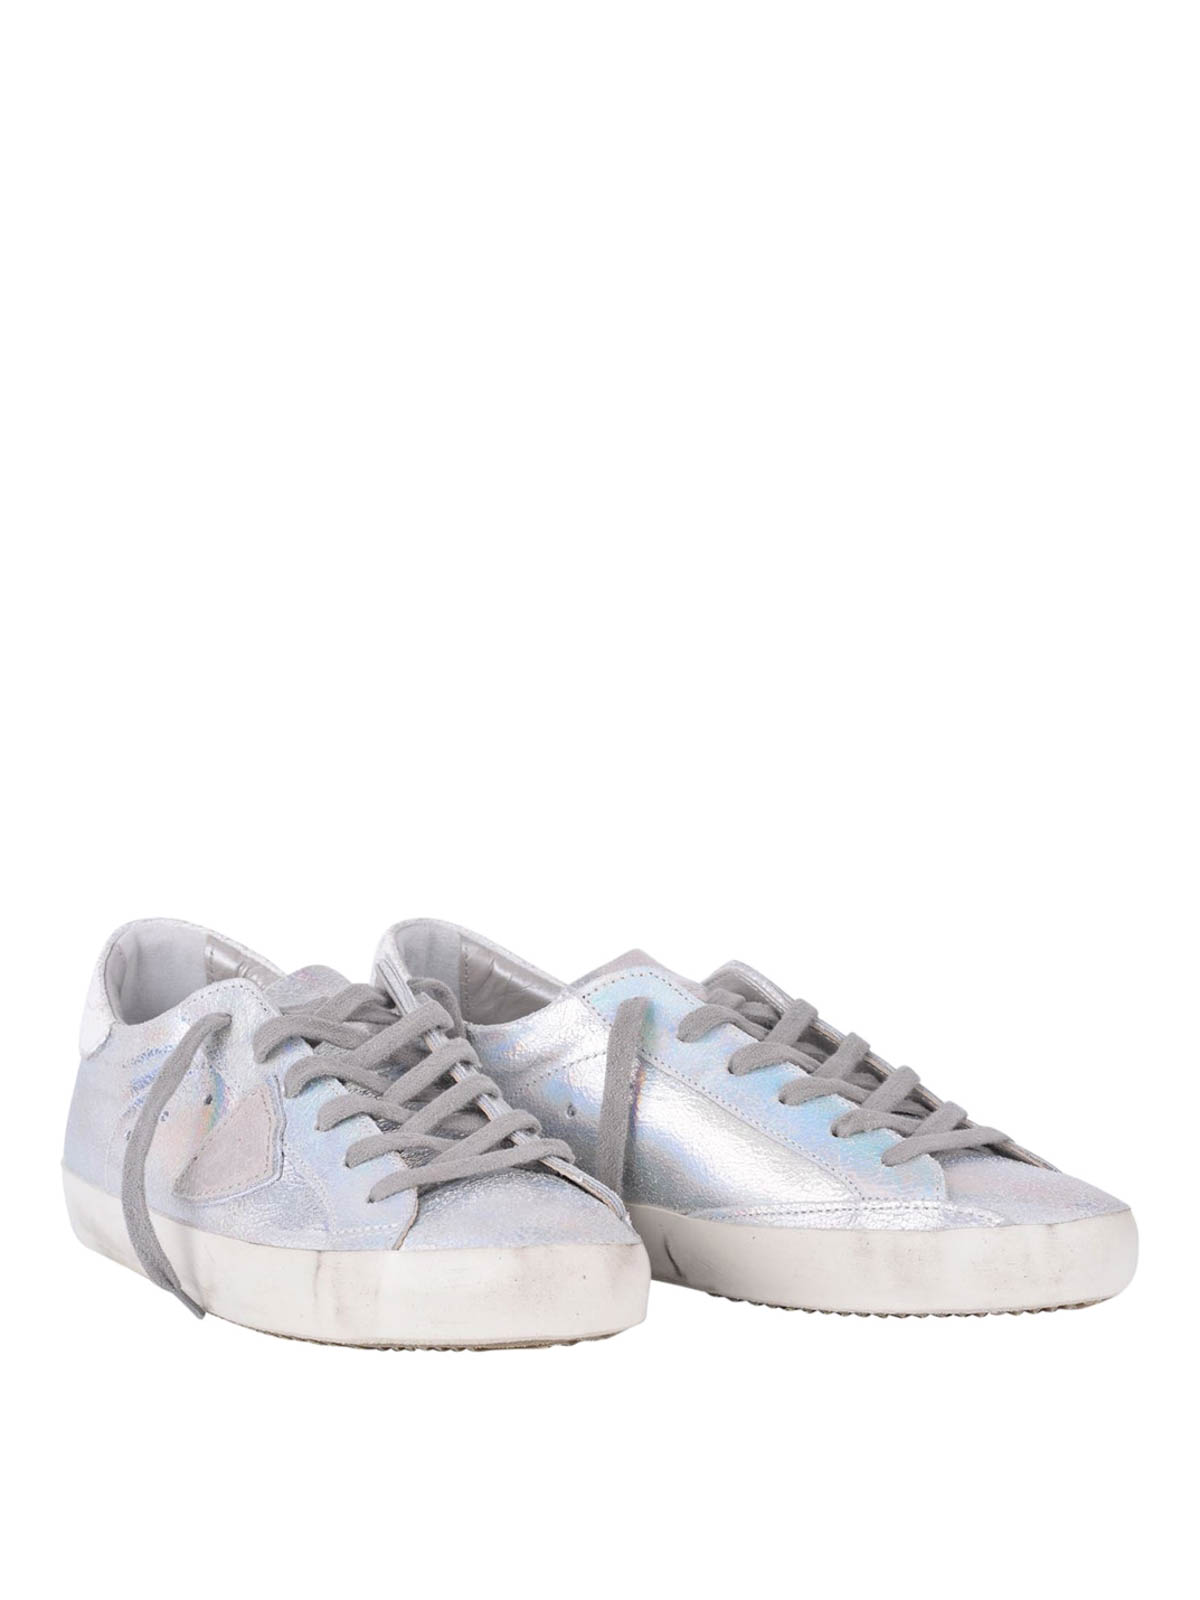 classic opalescent leather sneakers by philippe model trainers ikrix. Black Bedroom Furniture Sets. Home Design Ideas